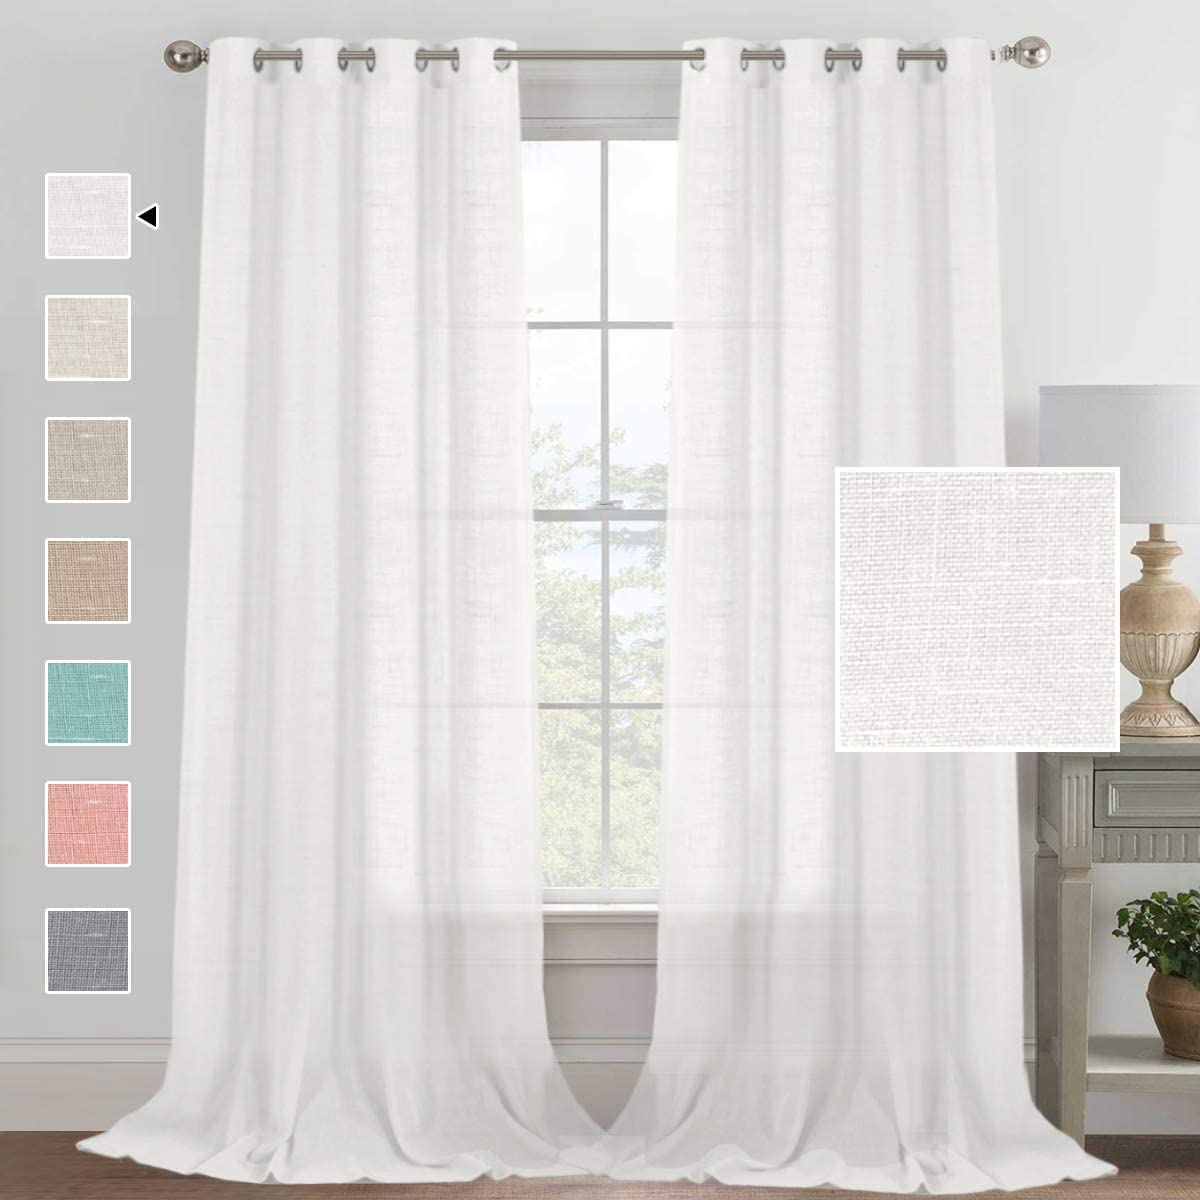 H.VERSAILTEX Elegant Linen Blended Curtains Privacy Protection Light Filtering Silver Grommet Window Panels Drapes for Bedroom Living Room Linen Semi Sheer Curtains Set of 2 52 W x 108 L, White